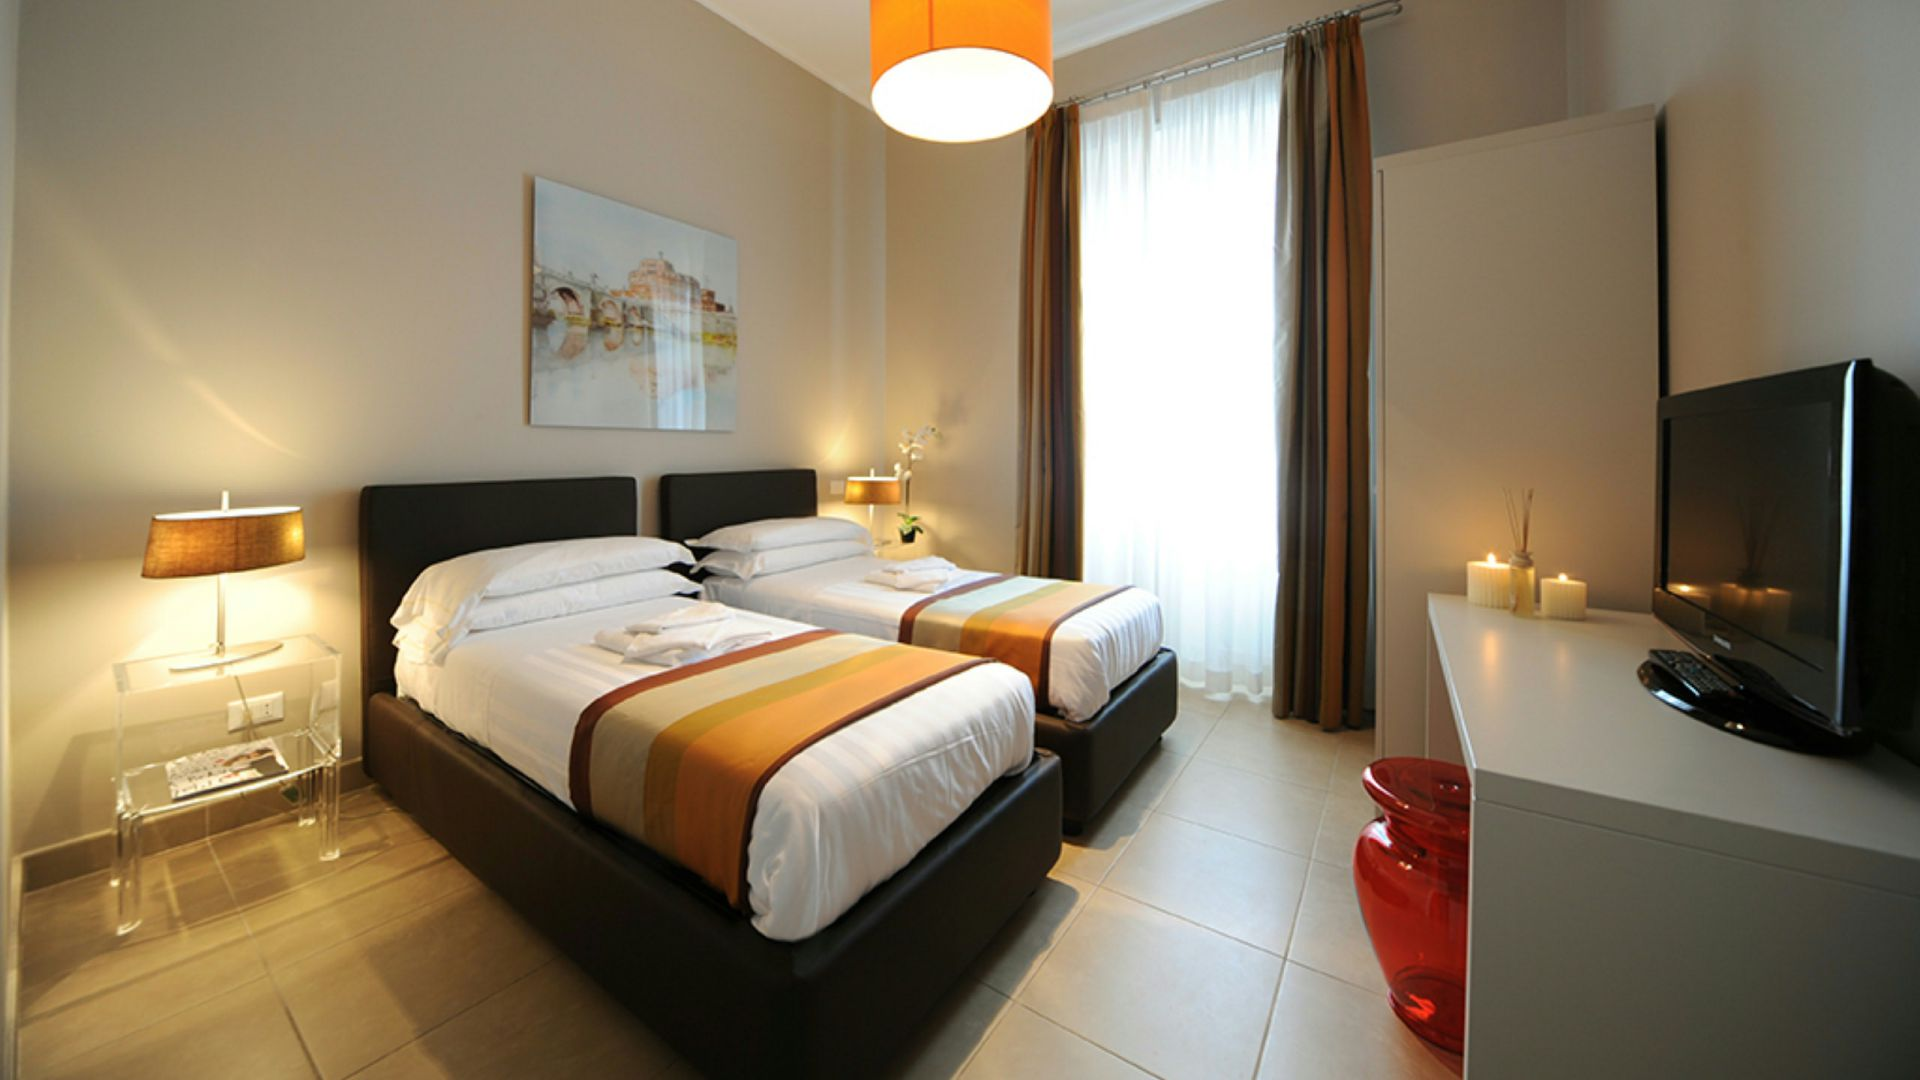 residence-trianon-rome-rooms-4096